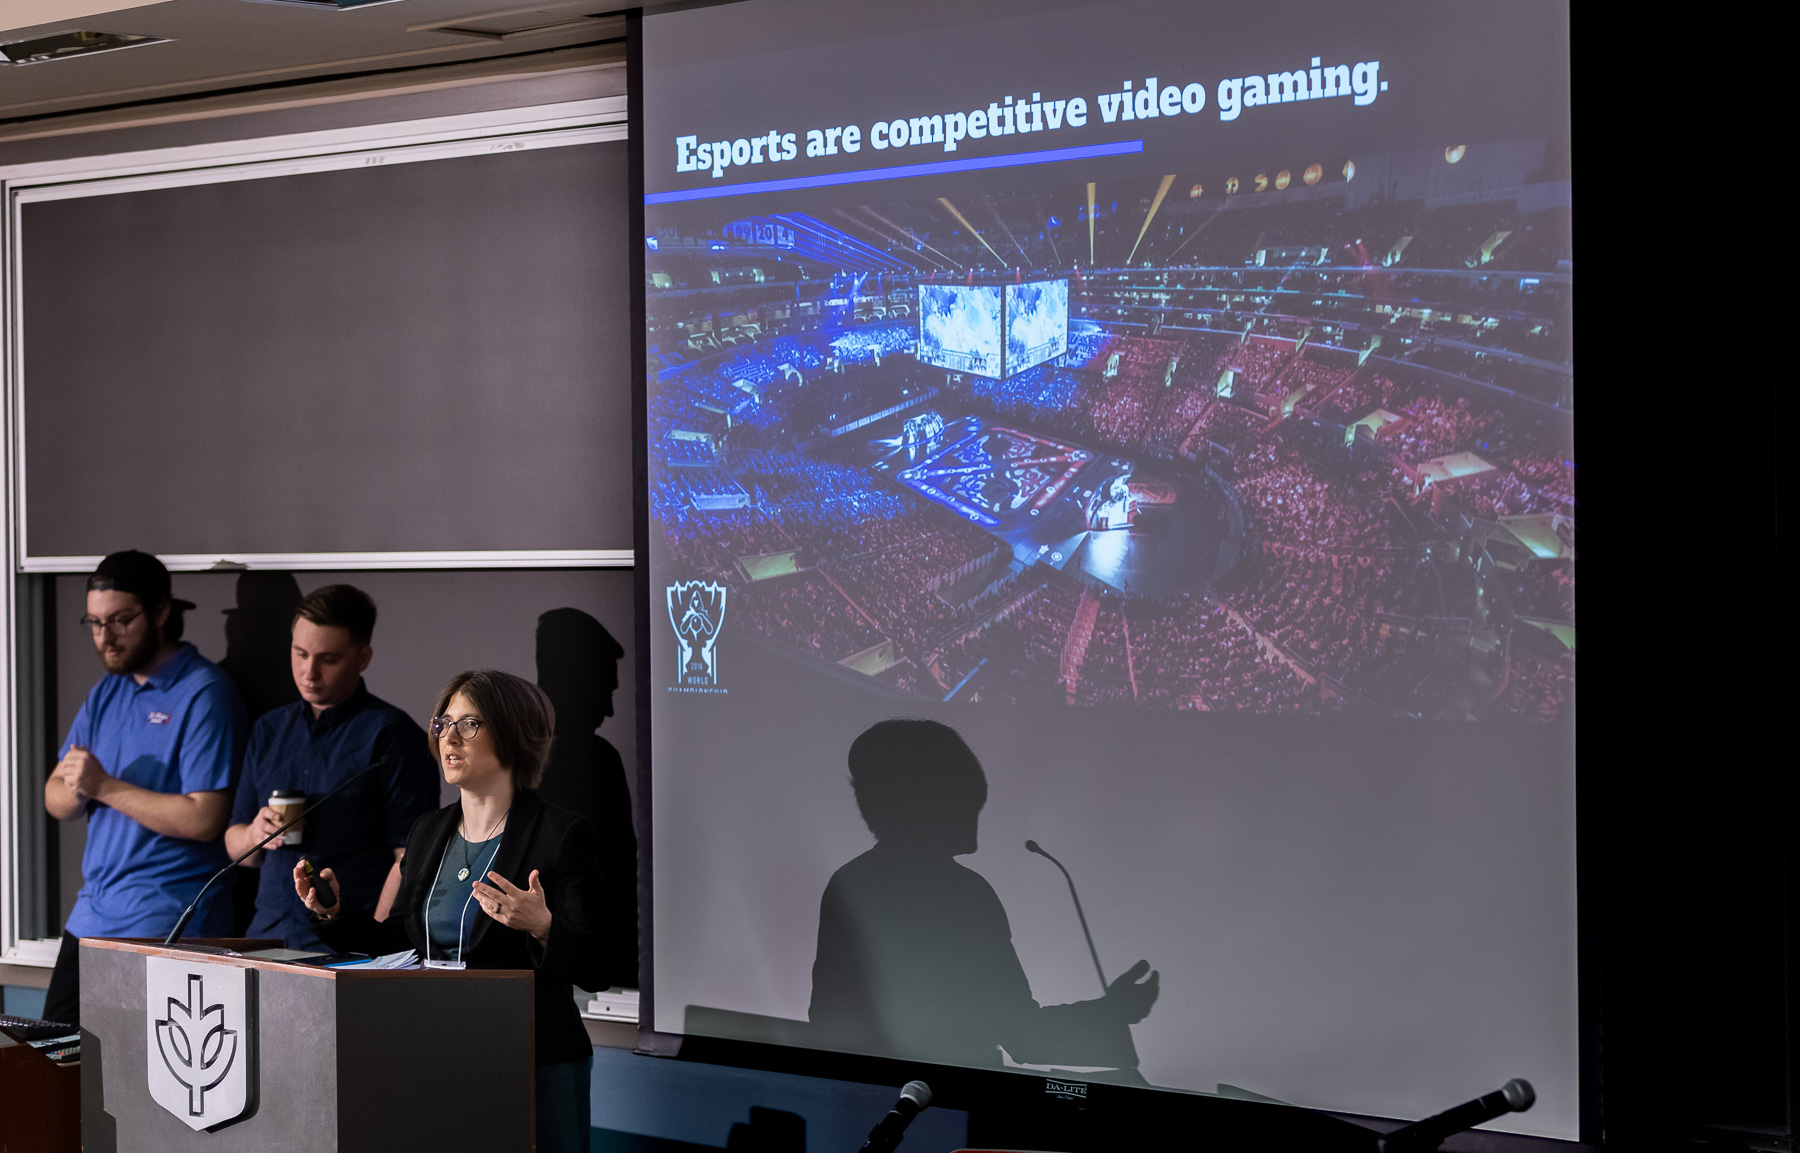 Samantha Close, assistant professor in the College of Communication, presents her project, Esports at DePaul: An Opportunity to Advance Vincentian Values & Establish Academic Leadership in a Cultural Phenomenon. (DePaul University/Jeff Carrion)